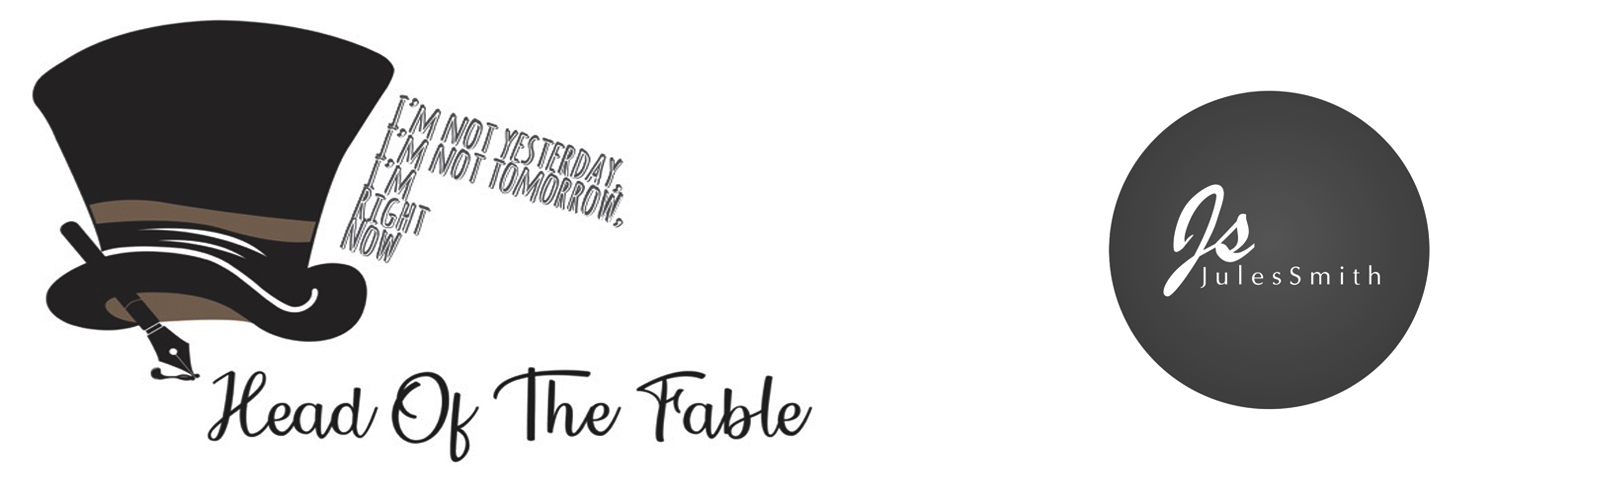 Head of the fable and Jules Smith logo